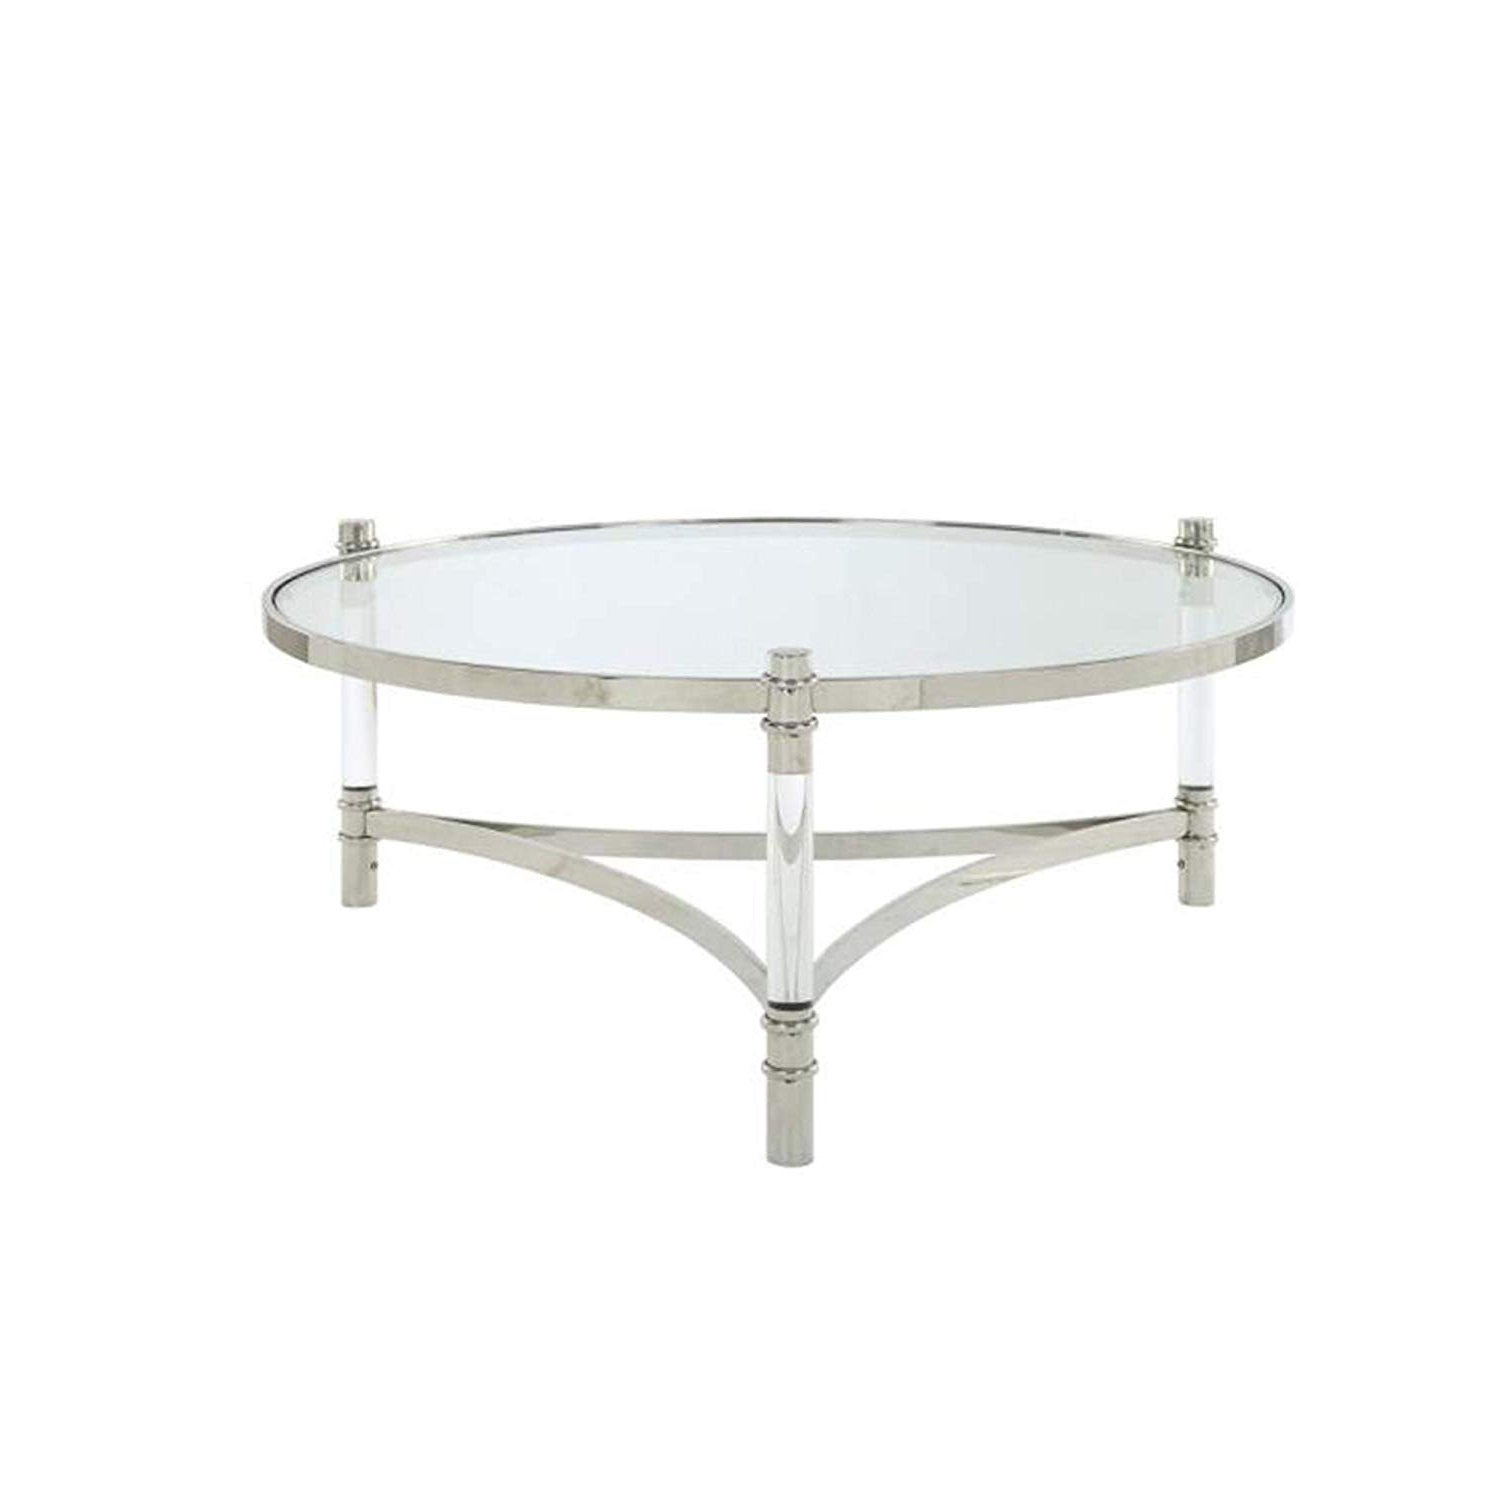 2020 Silver Orchid Bardeen Round Coffee Tables For Coffe Table ~ Coffe Table Silver Round Coffee Glass And (Gallery 15 of 20)